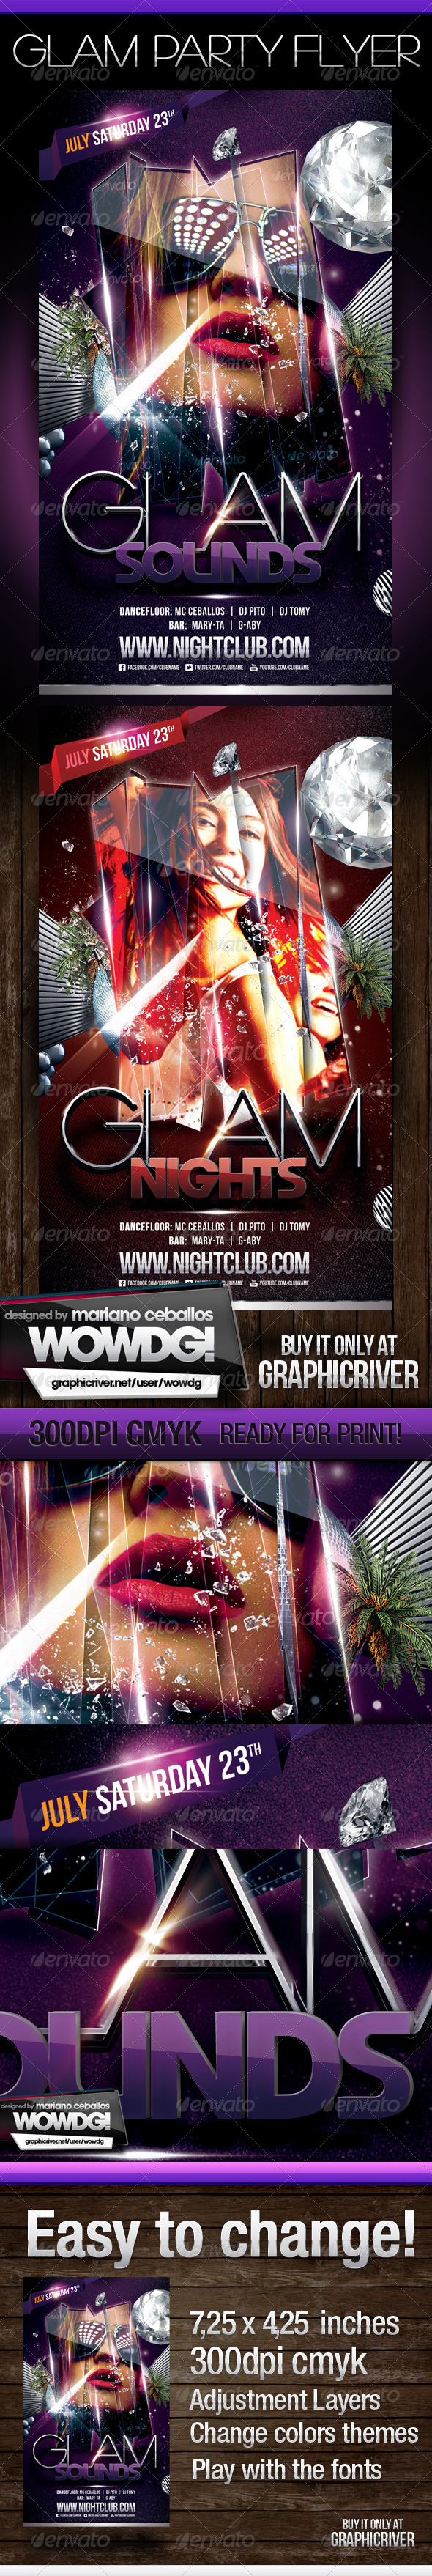 Glam Party Template Flyer - Flyers Print Templates